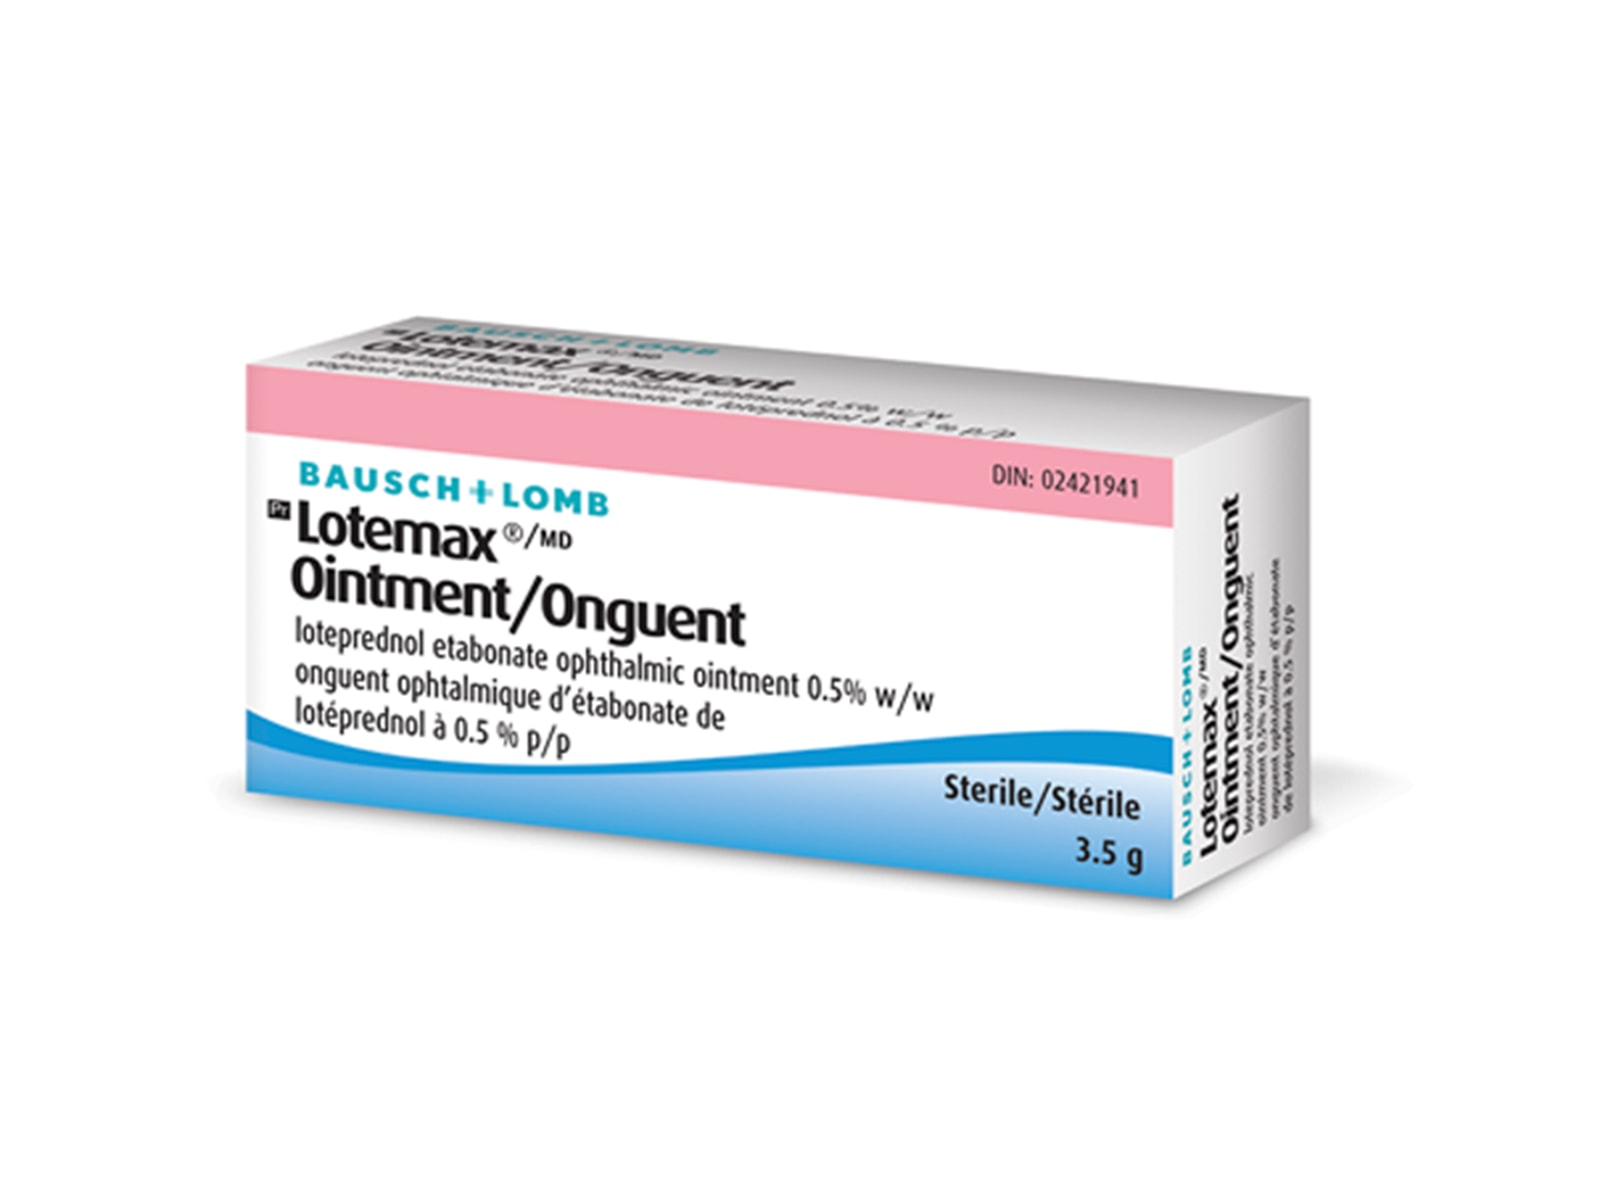 Lotemax Ointment